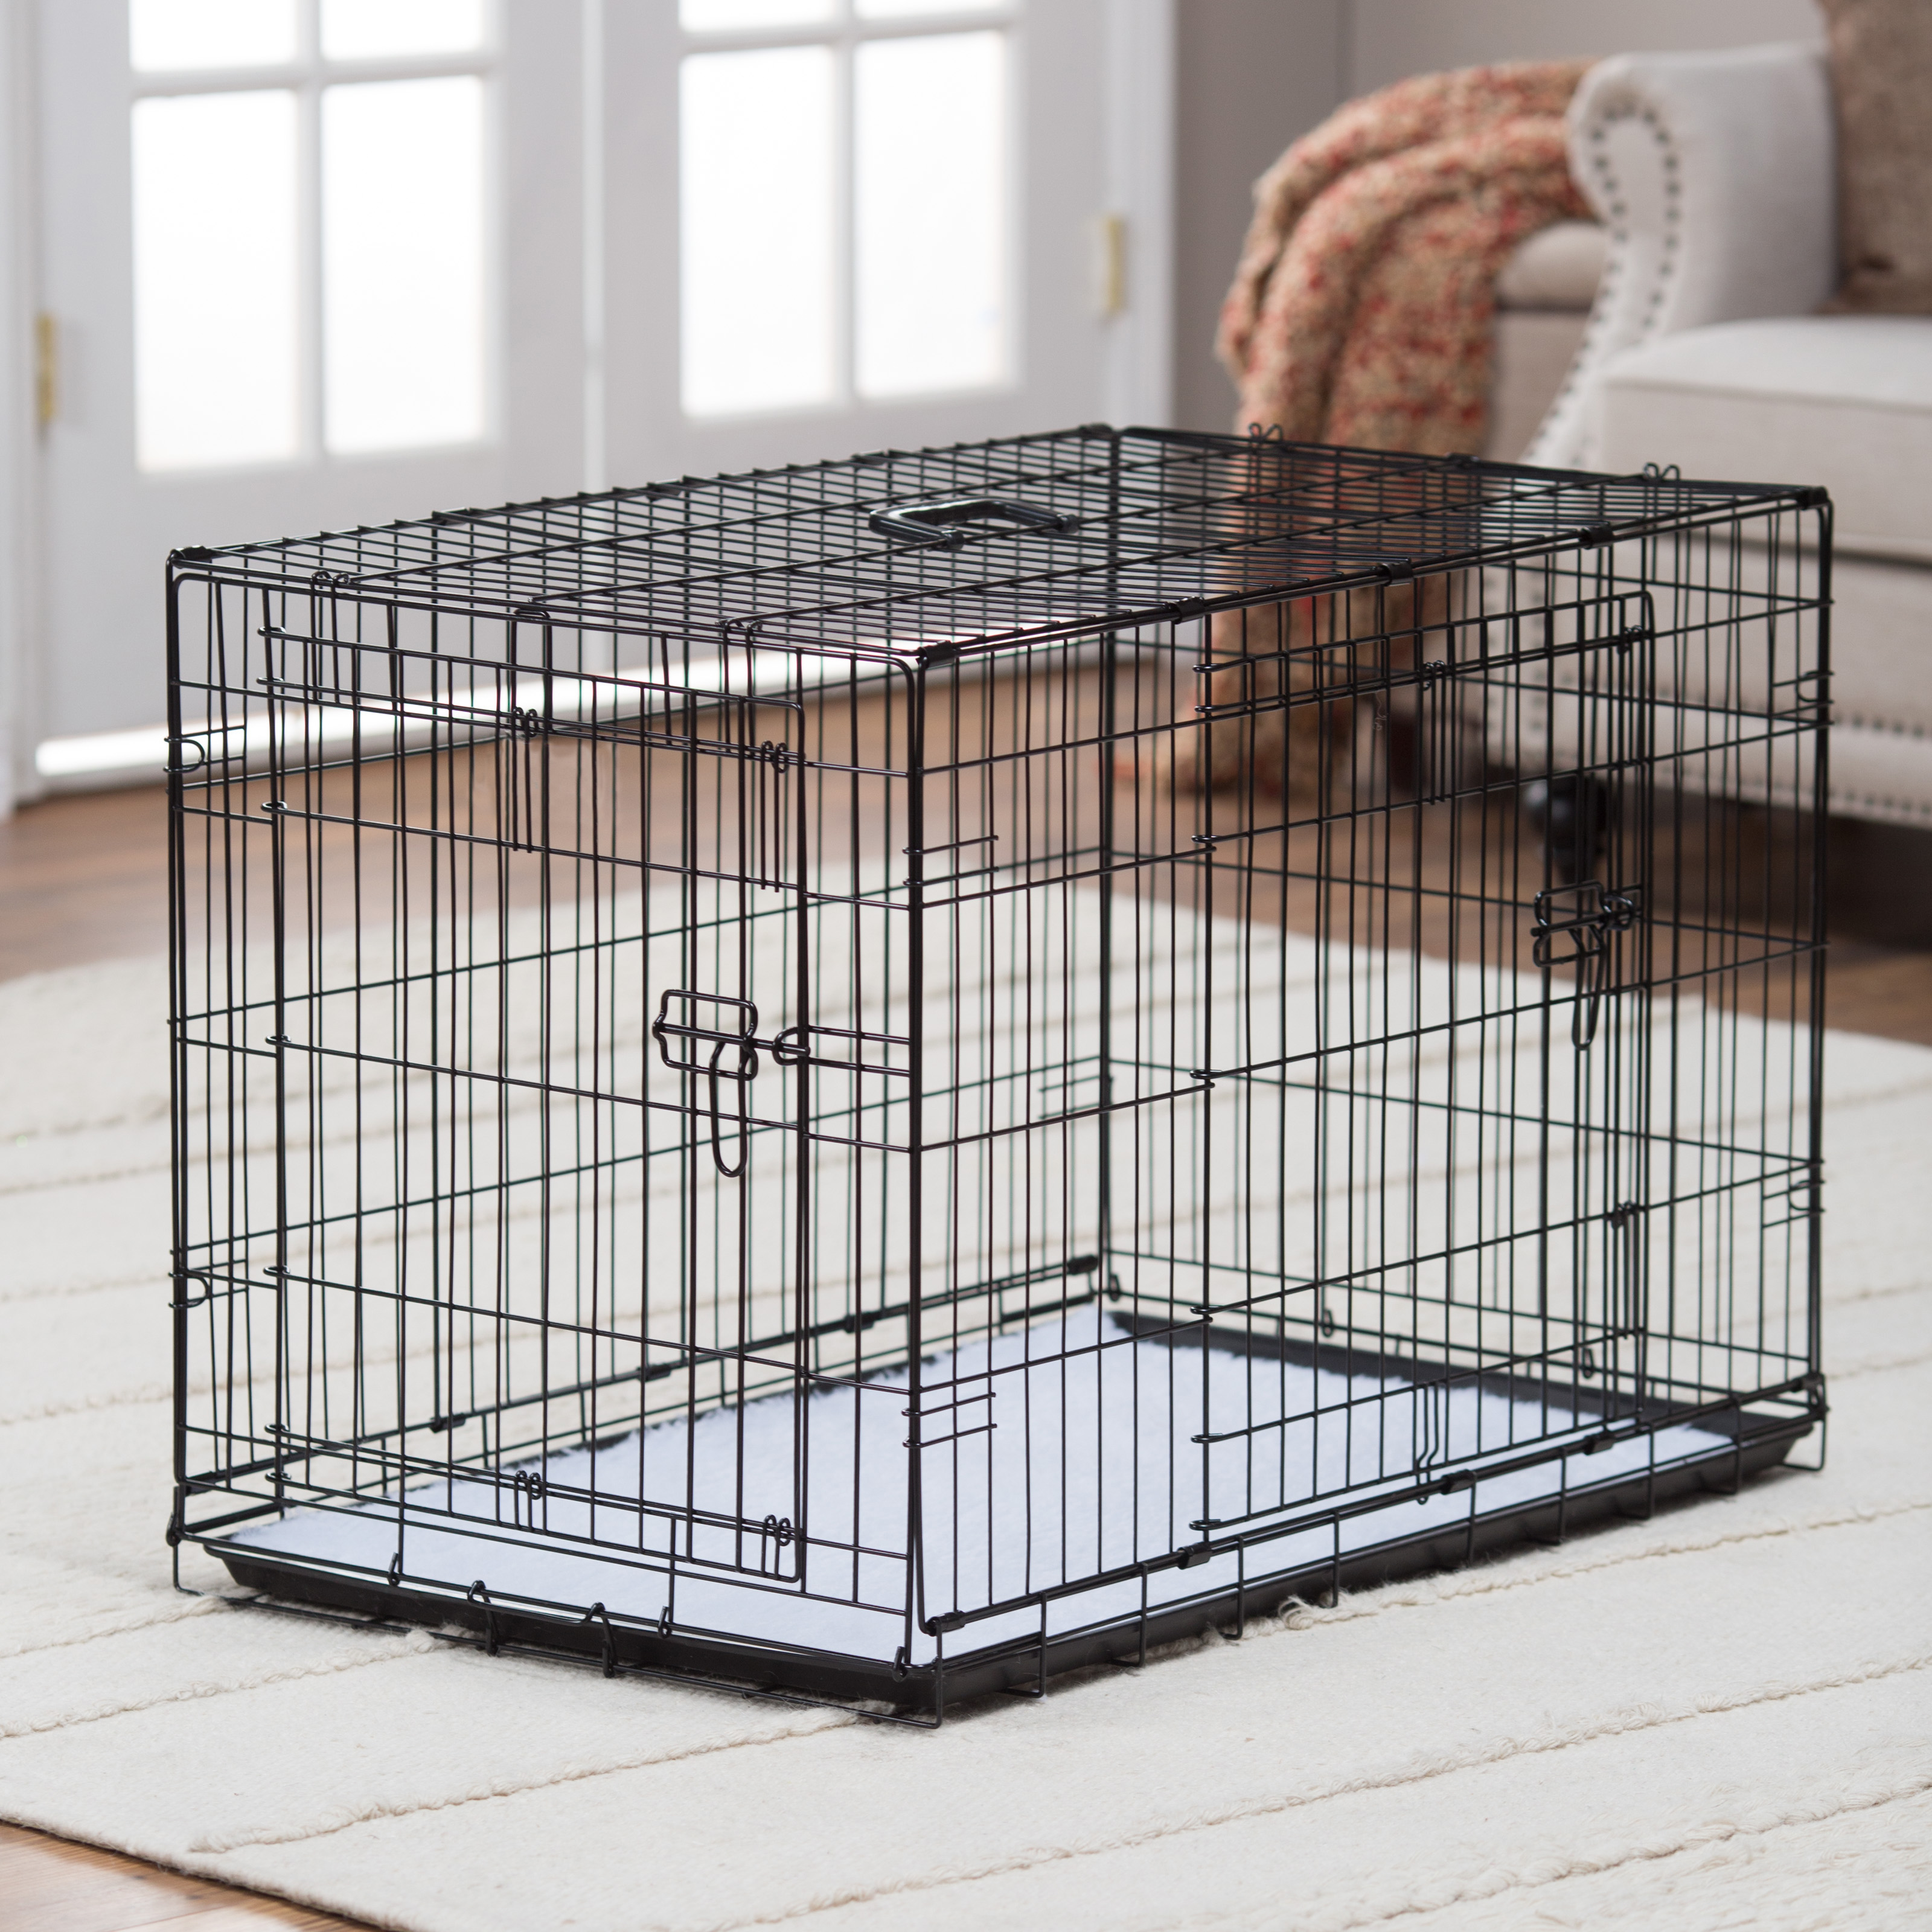 quick view precision pet products provalu double door - Precision Pet Products